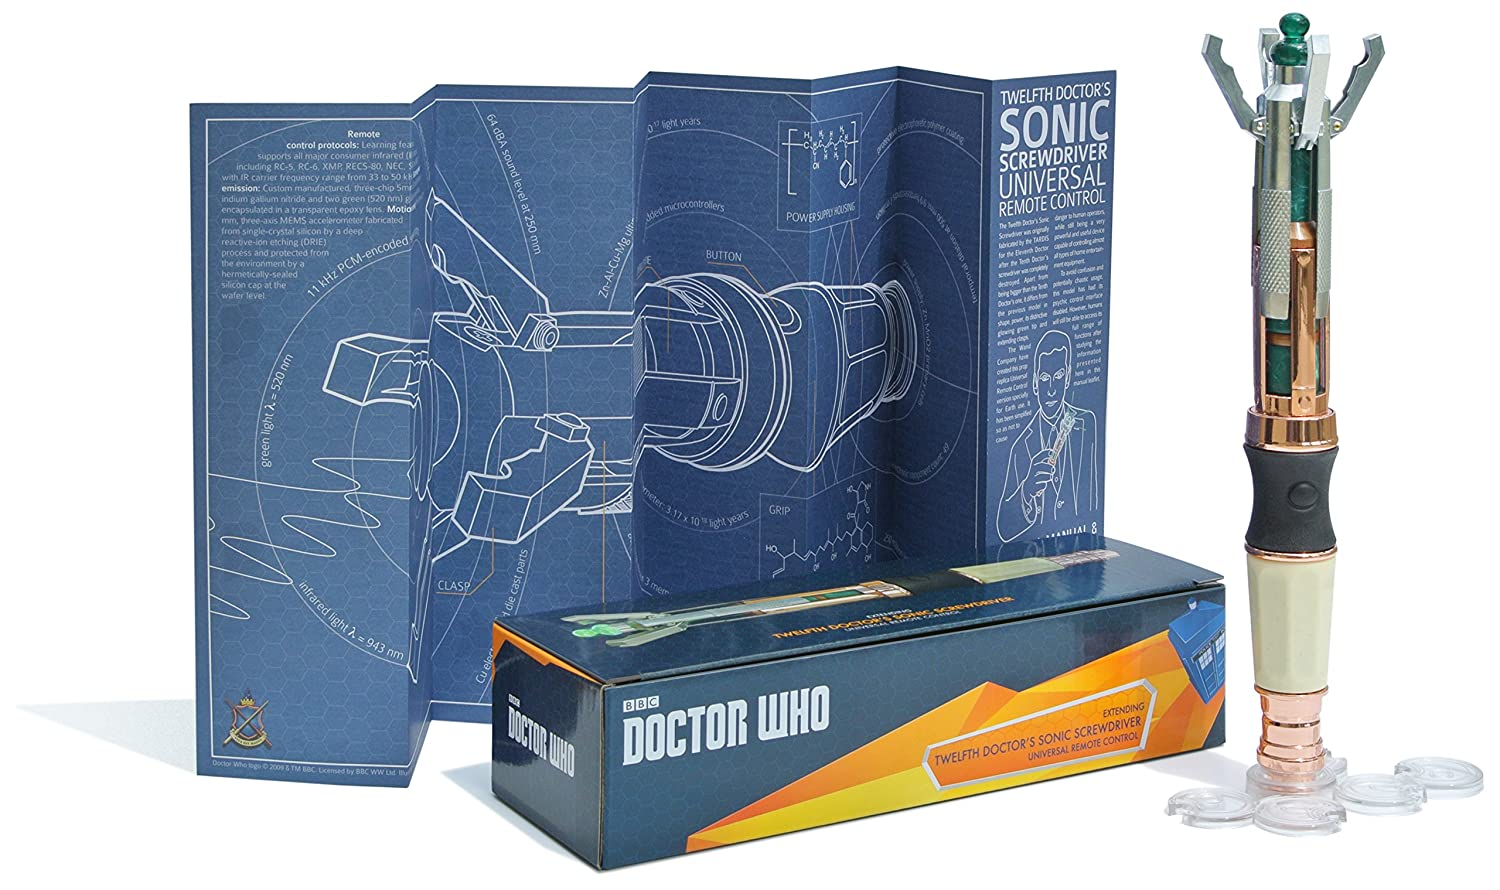 The Wand Company WRC11015 Twelfth Doctor's Sonic Screwdriver Universal Remote Control The Wand Company Ltd. - US Accessory Consumer Accessories